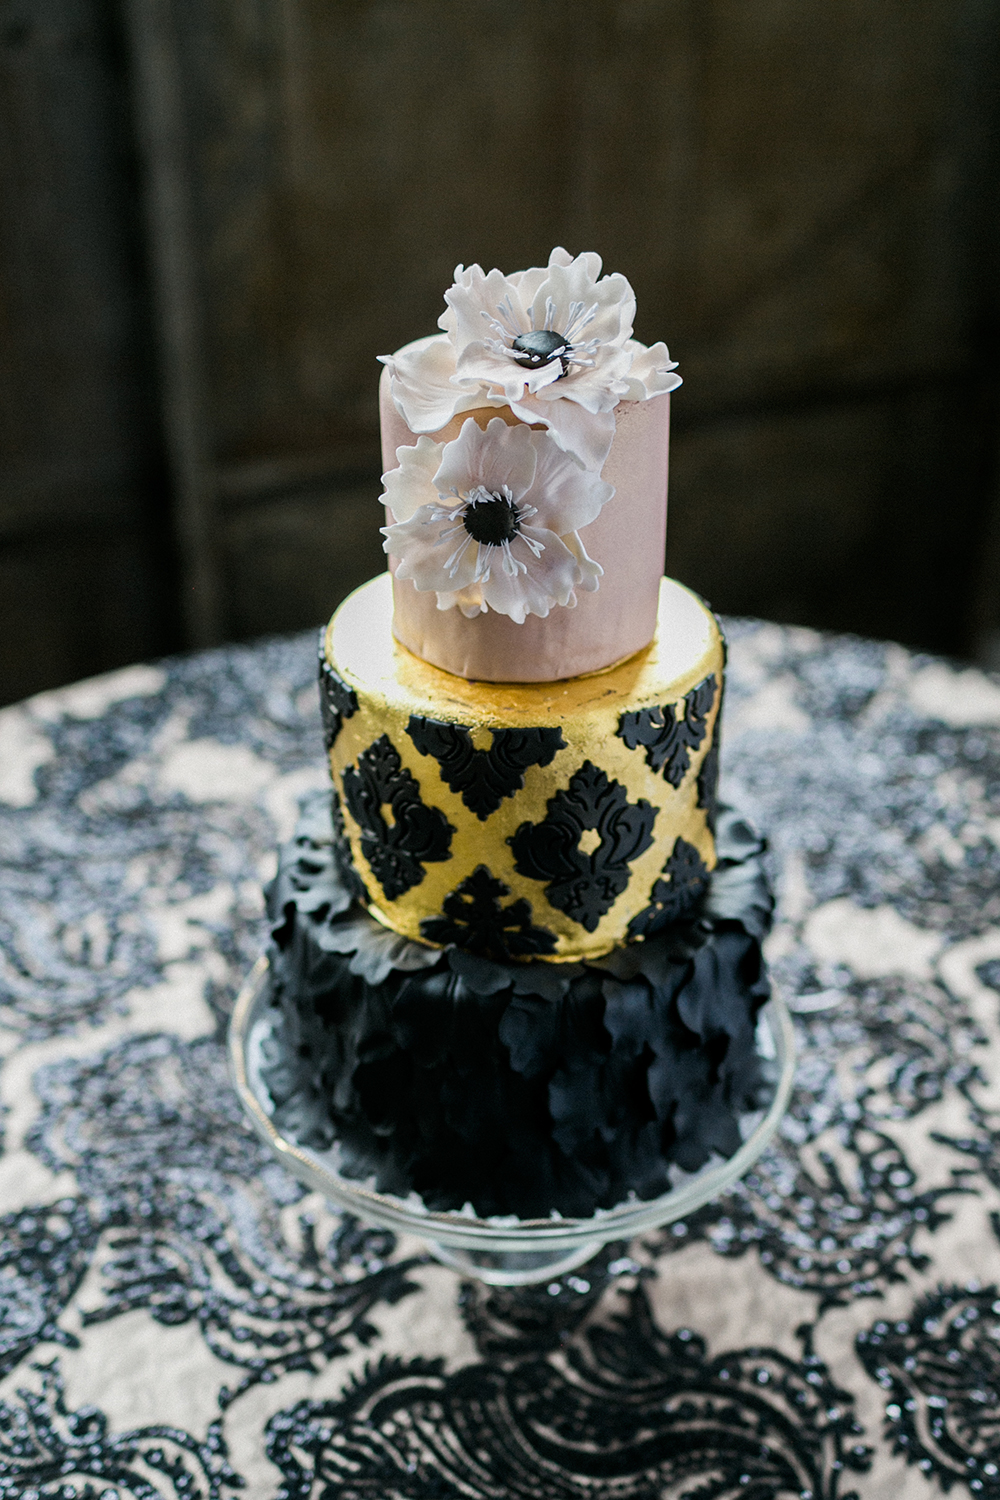 black gold and pink wedding cake - photo by Alexis June Weddings http://ruffledblog.com/industrial-glam-wedding-inspiration